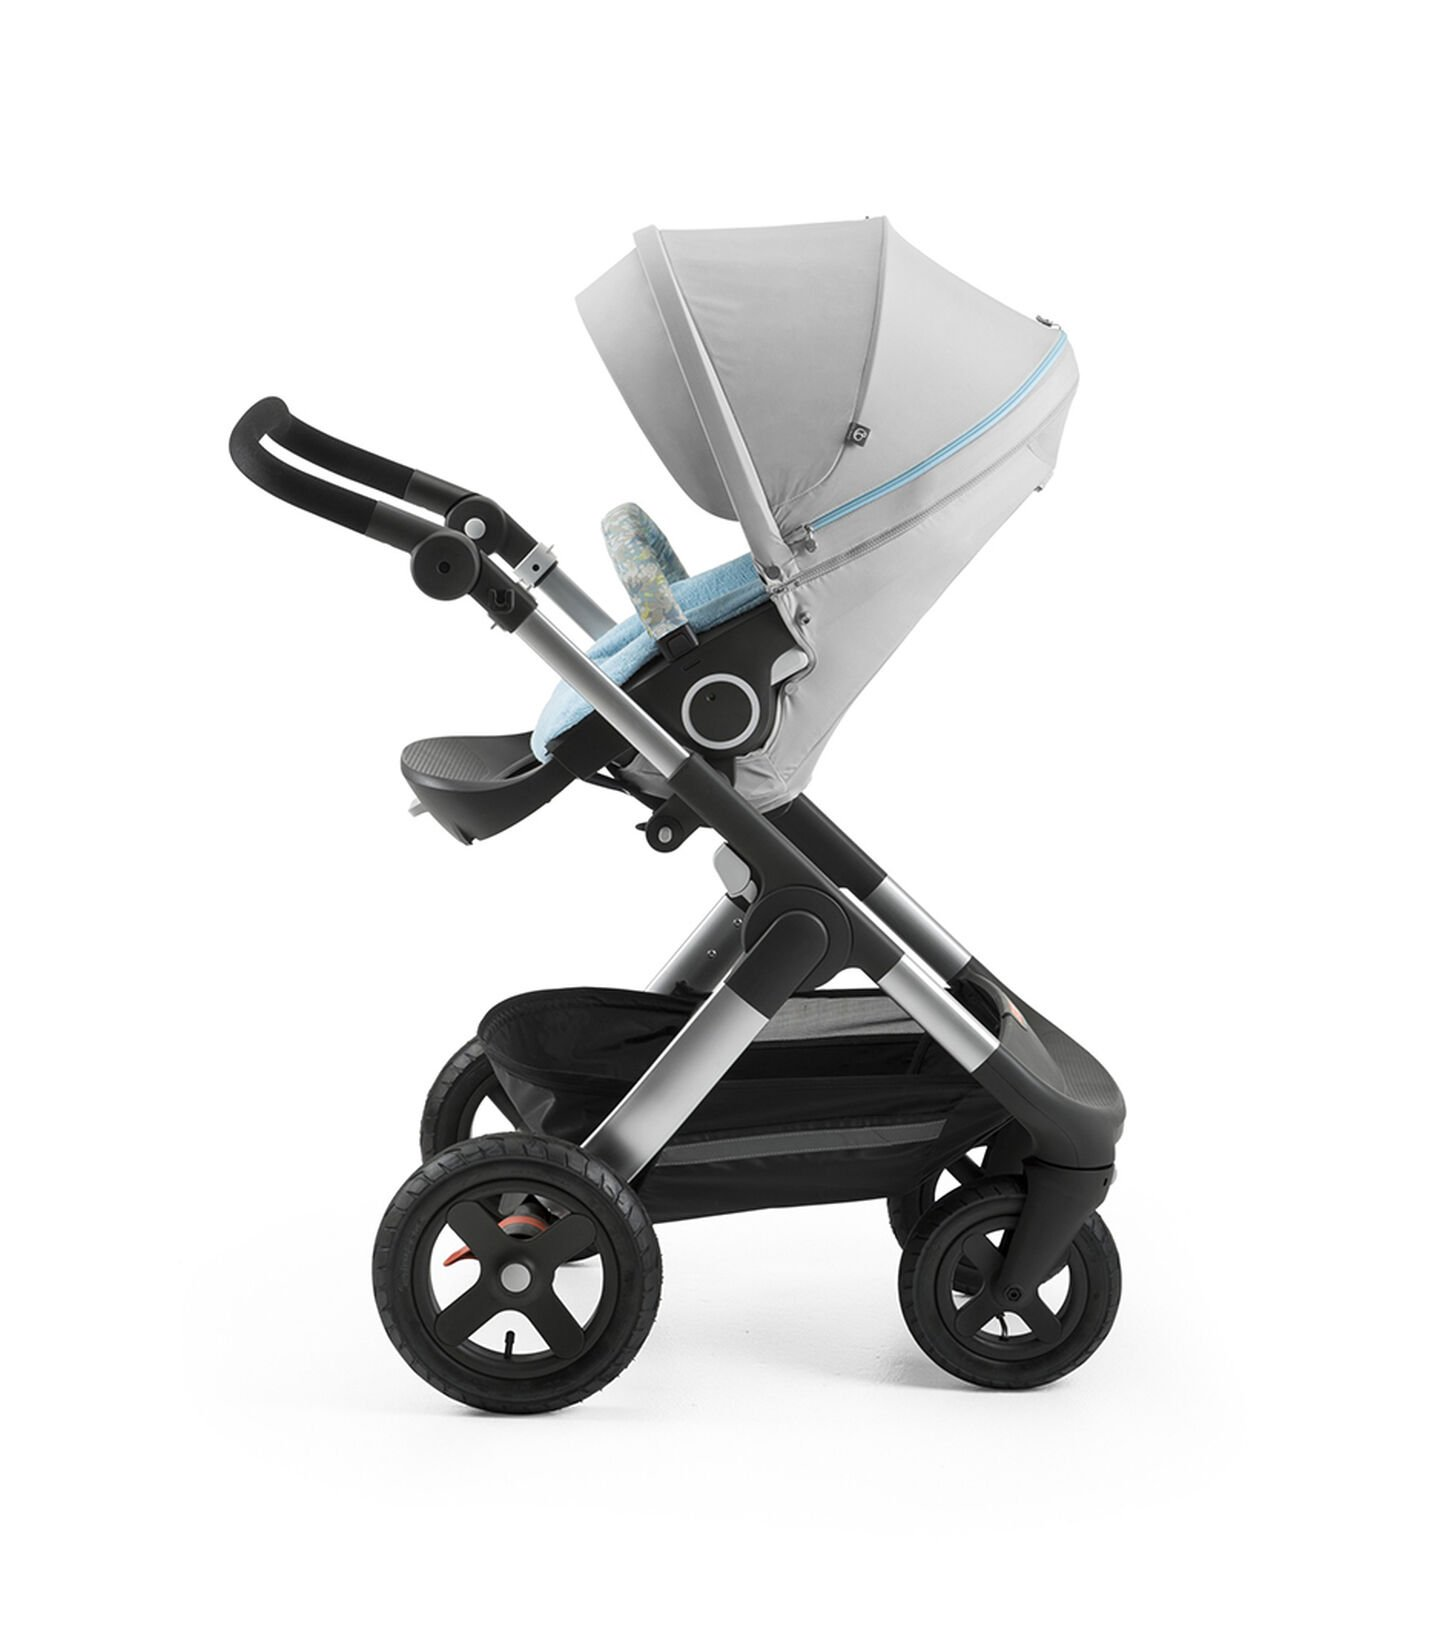 Stokke® Trailz™ with Stokke® Stroller Seat and Flora Blue Summer Kit.